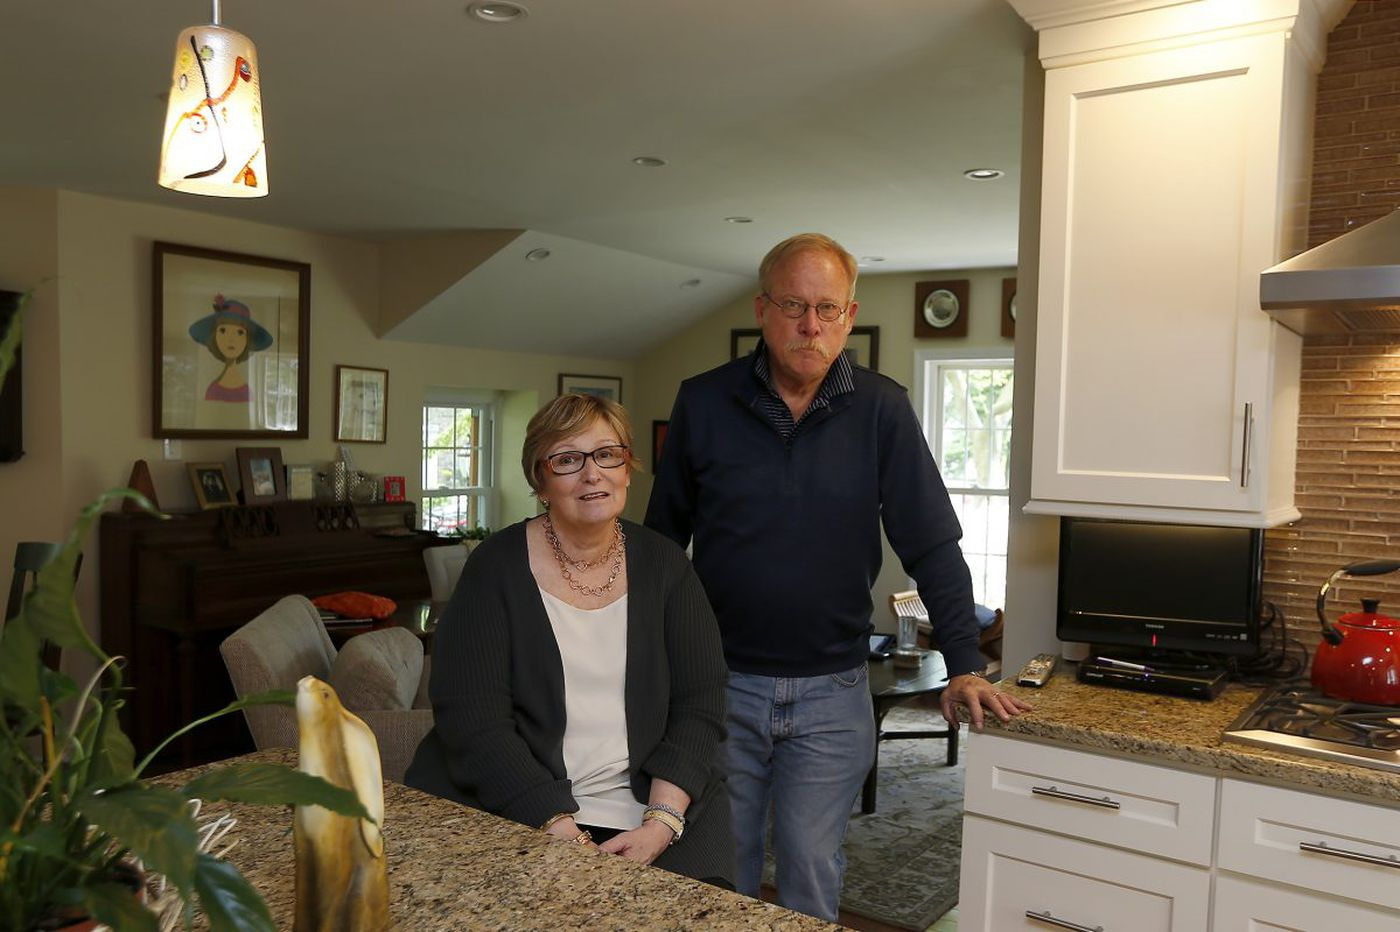 A Wynnewood home renovation well-worth the wait